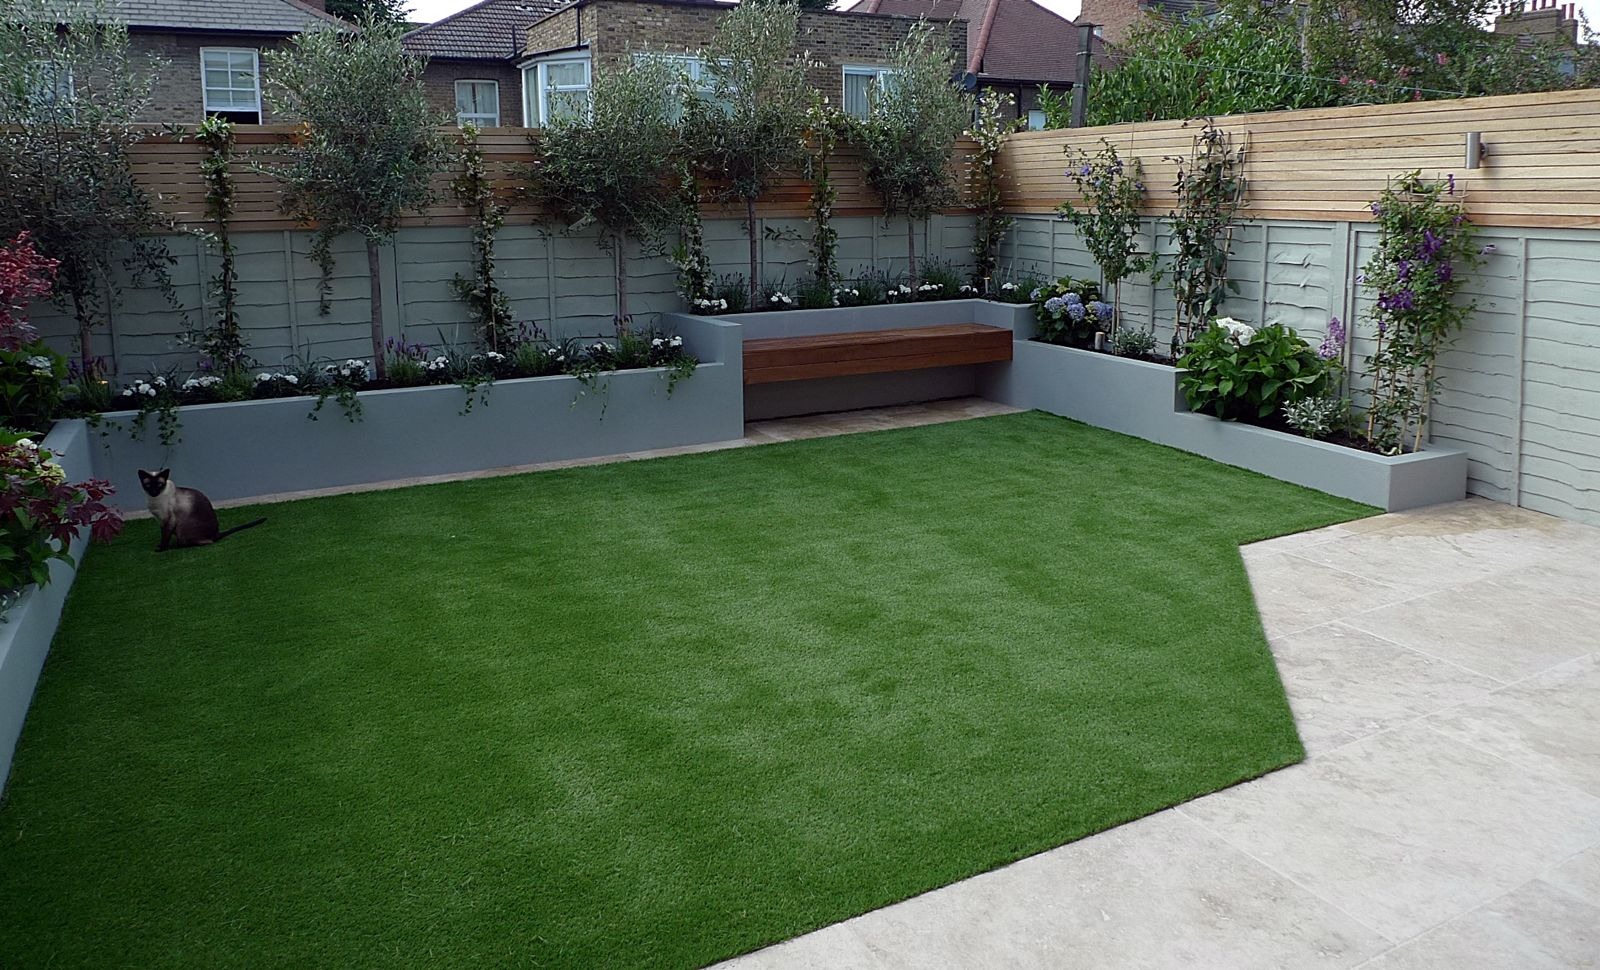 Garden Design With Artificial Grass small-garden-design-raised-beds-artificial-grass-travertine-paving